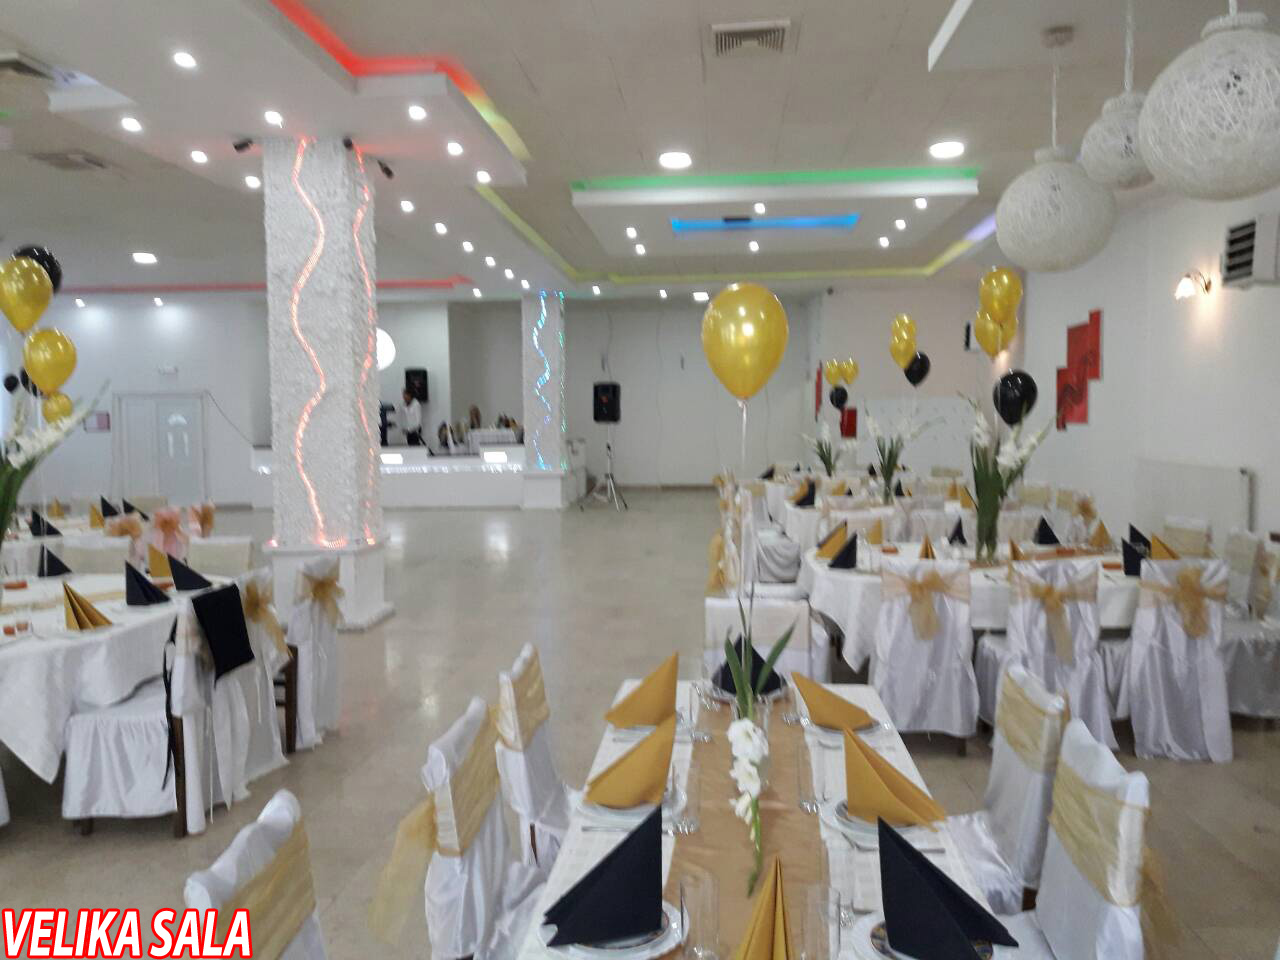 GRAND HALL KACAREVO AND CAFFE GRILL TICINO Renting halls Pancevo - Photo 9